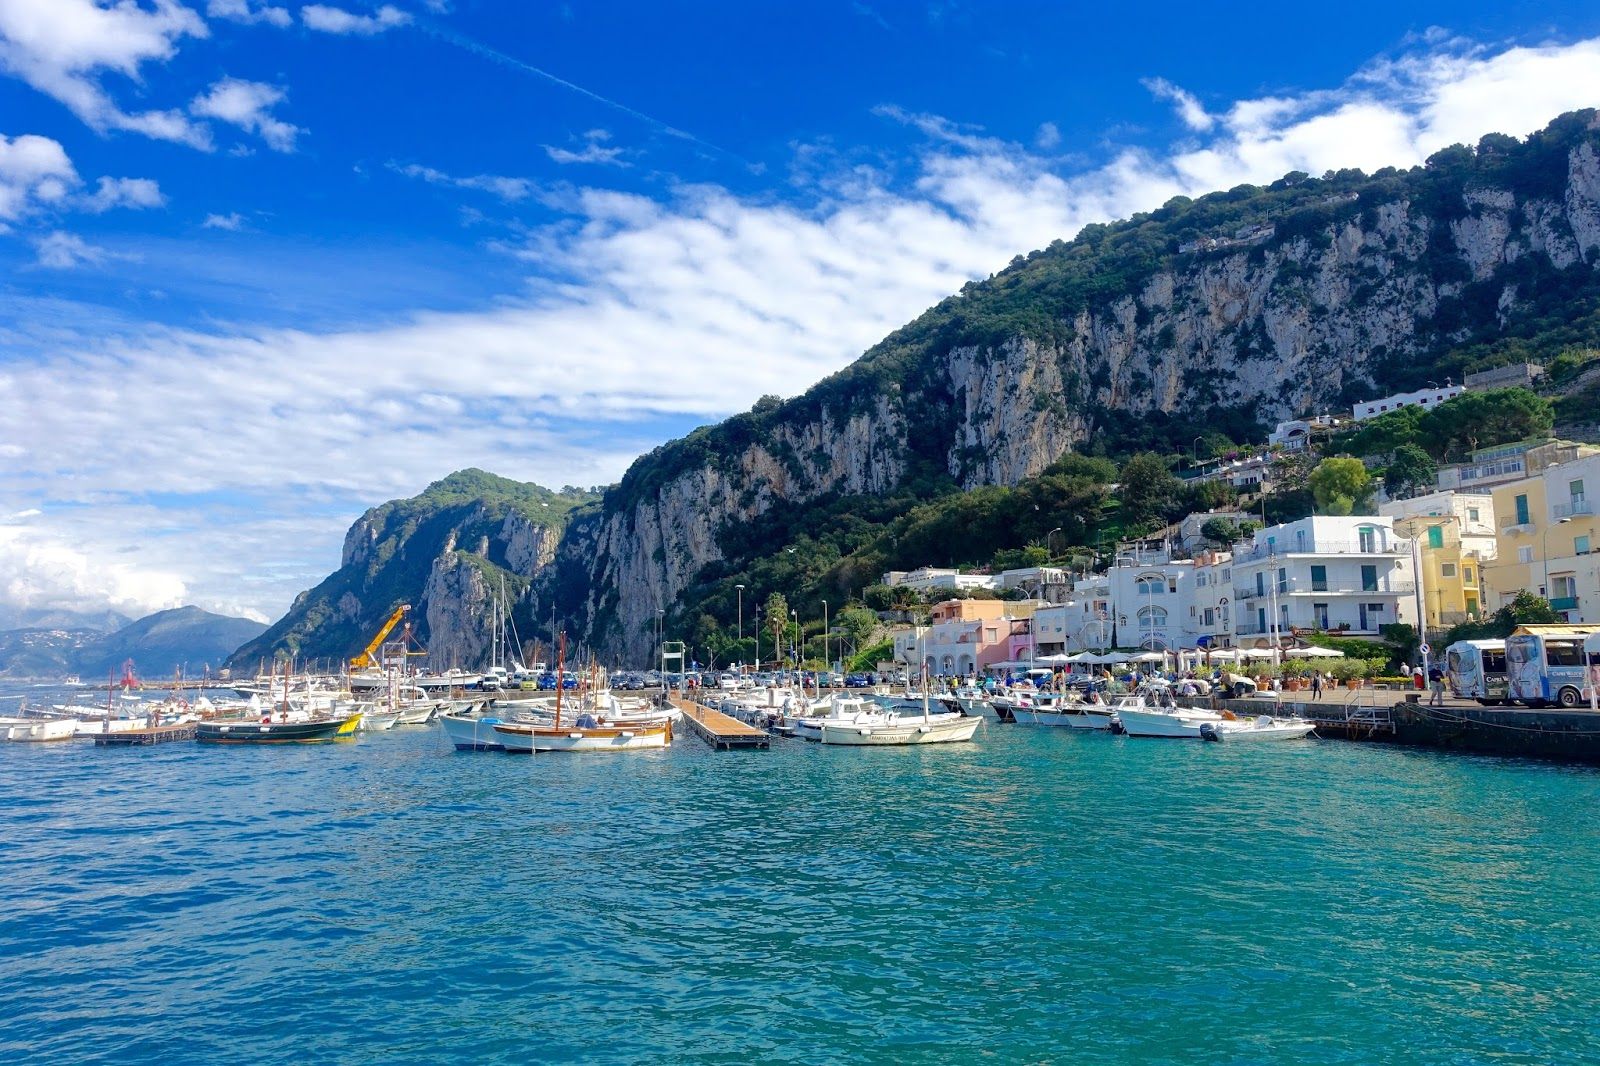 day trip to capri by boat from sorrento